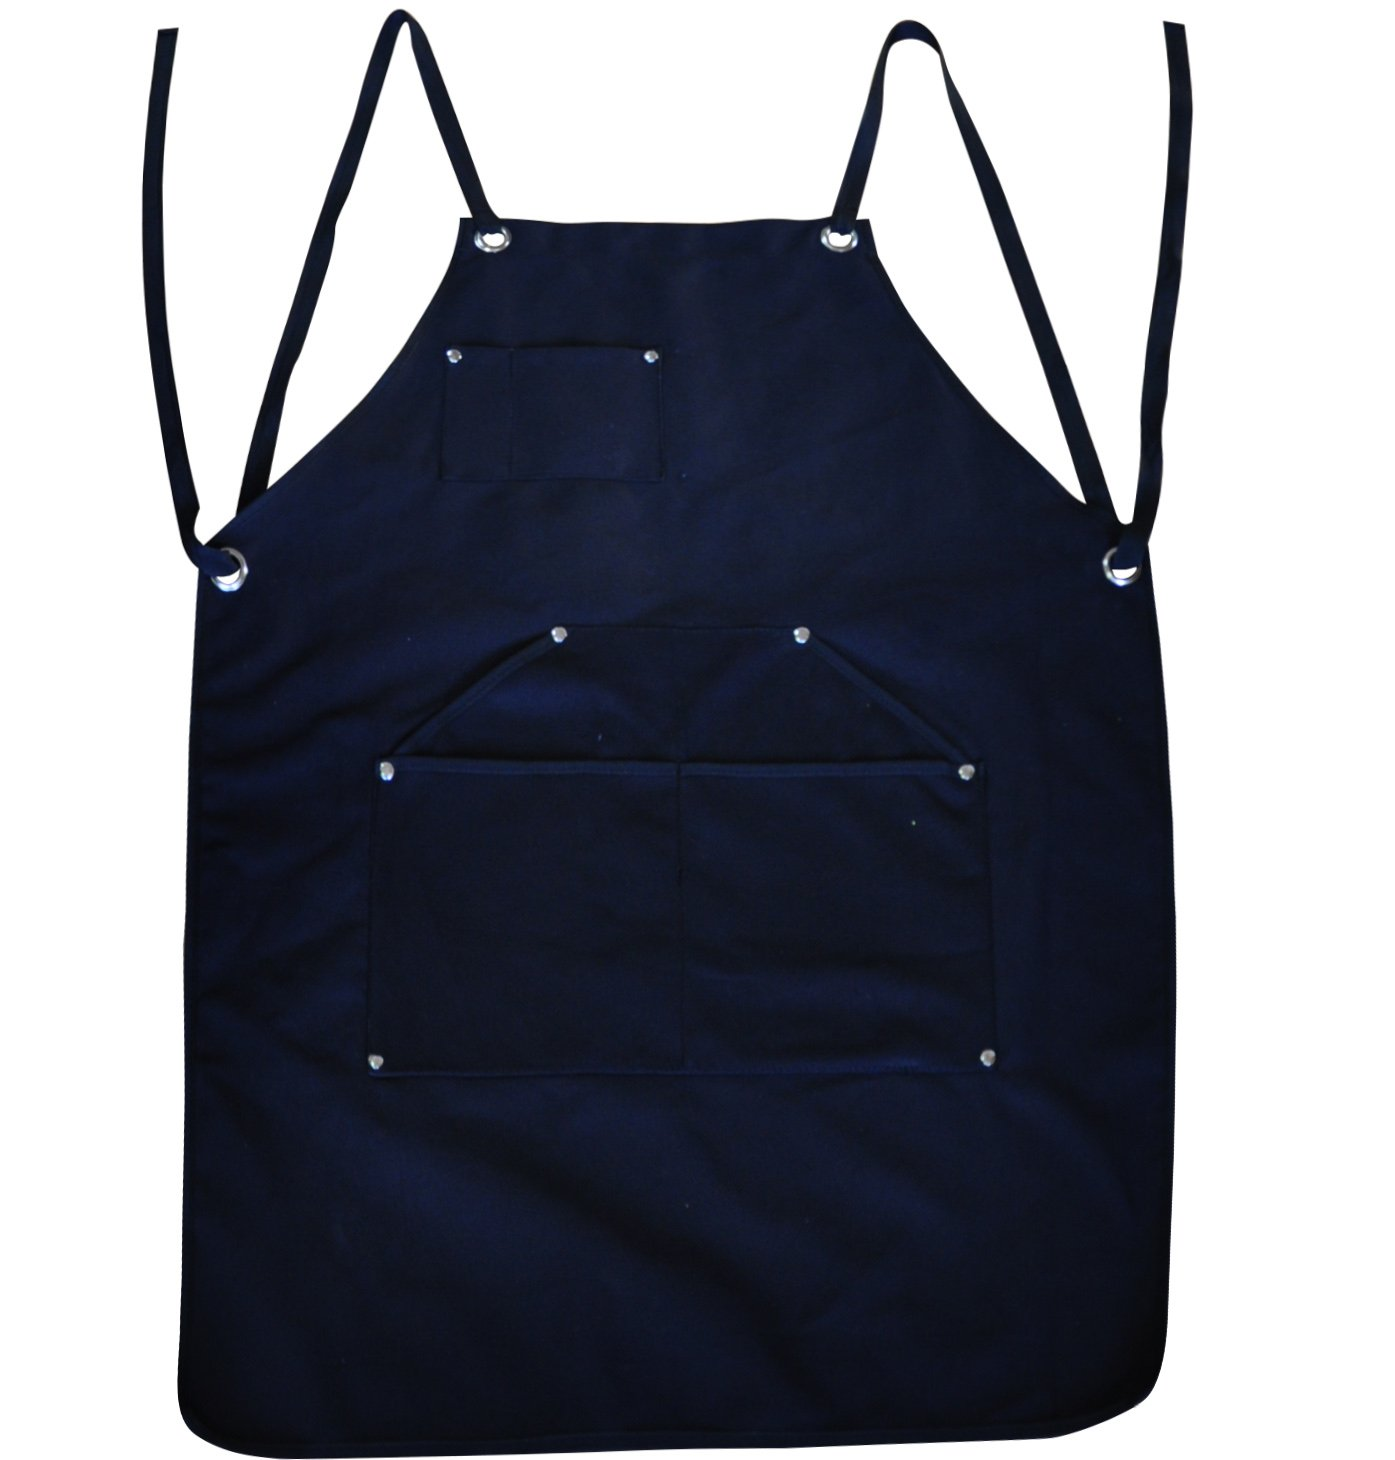 BroilPro Accessories Durable Goods - Deluxe Edition - Waxed Canvas Tool Apron - Upgraded with Padded Straps, Quick Release Buckle & Dual Hammer Loops, Adjustable M to XXL